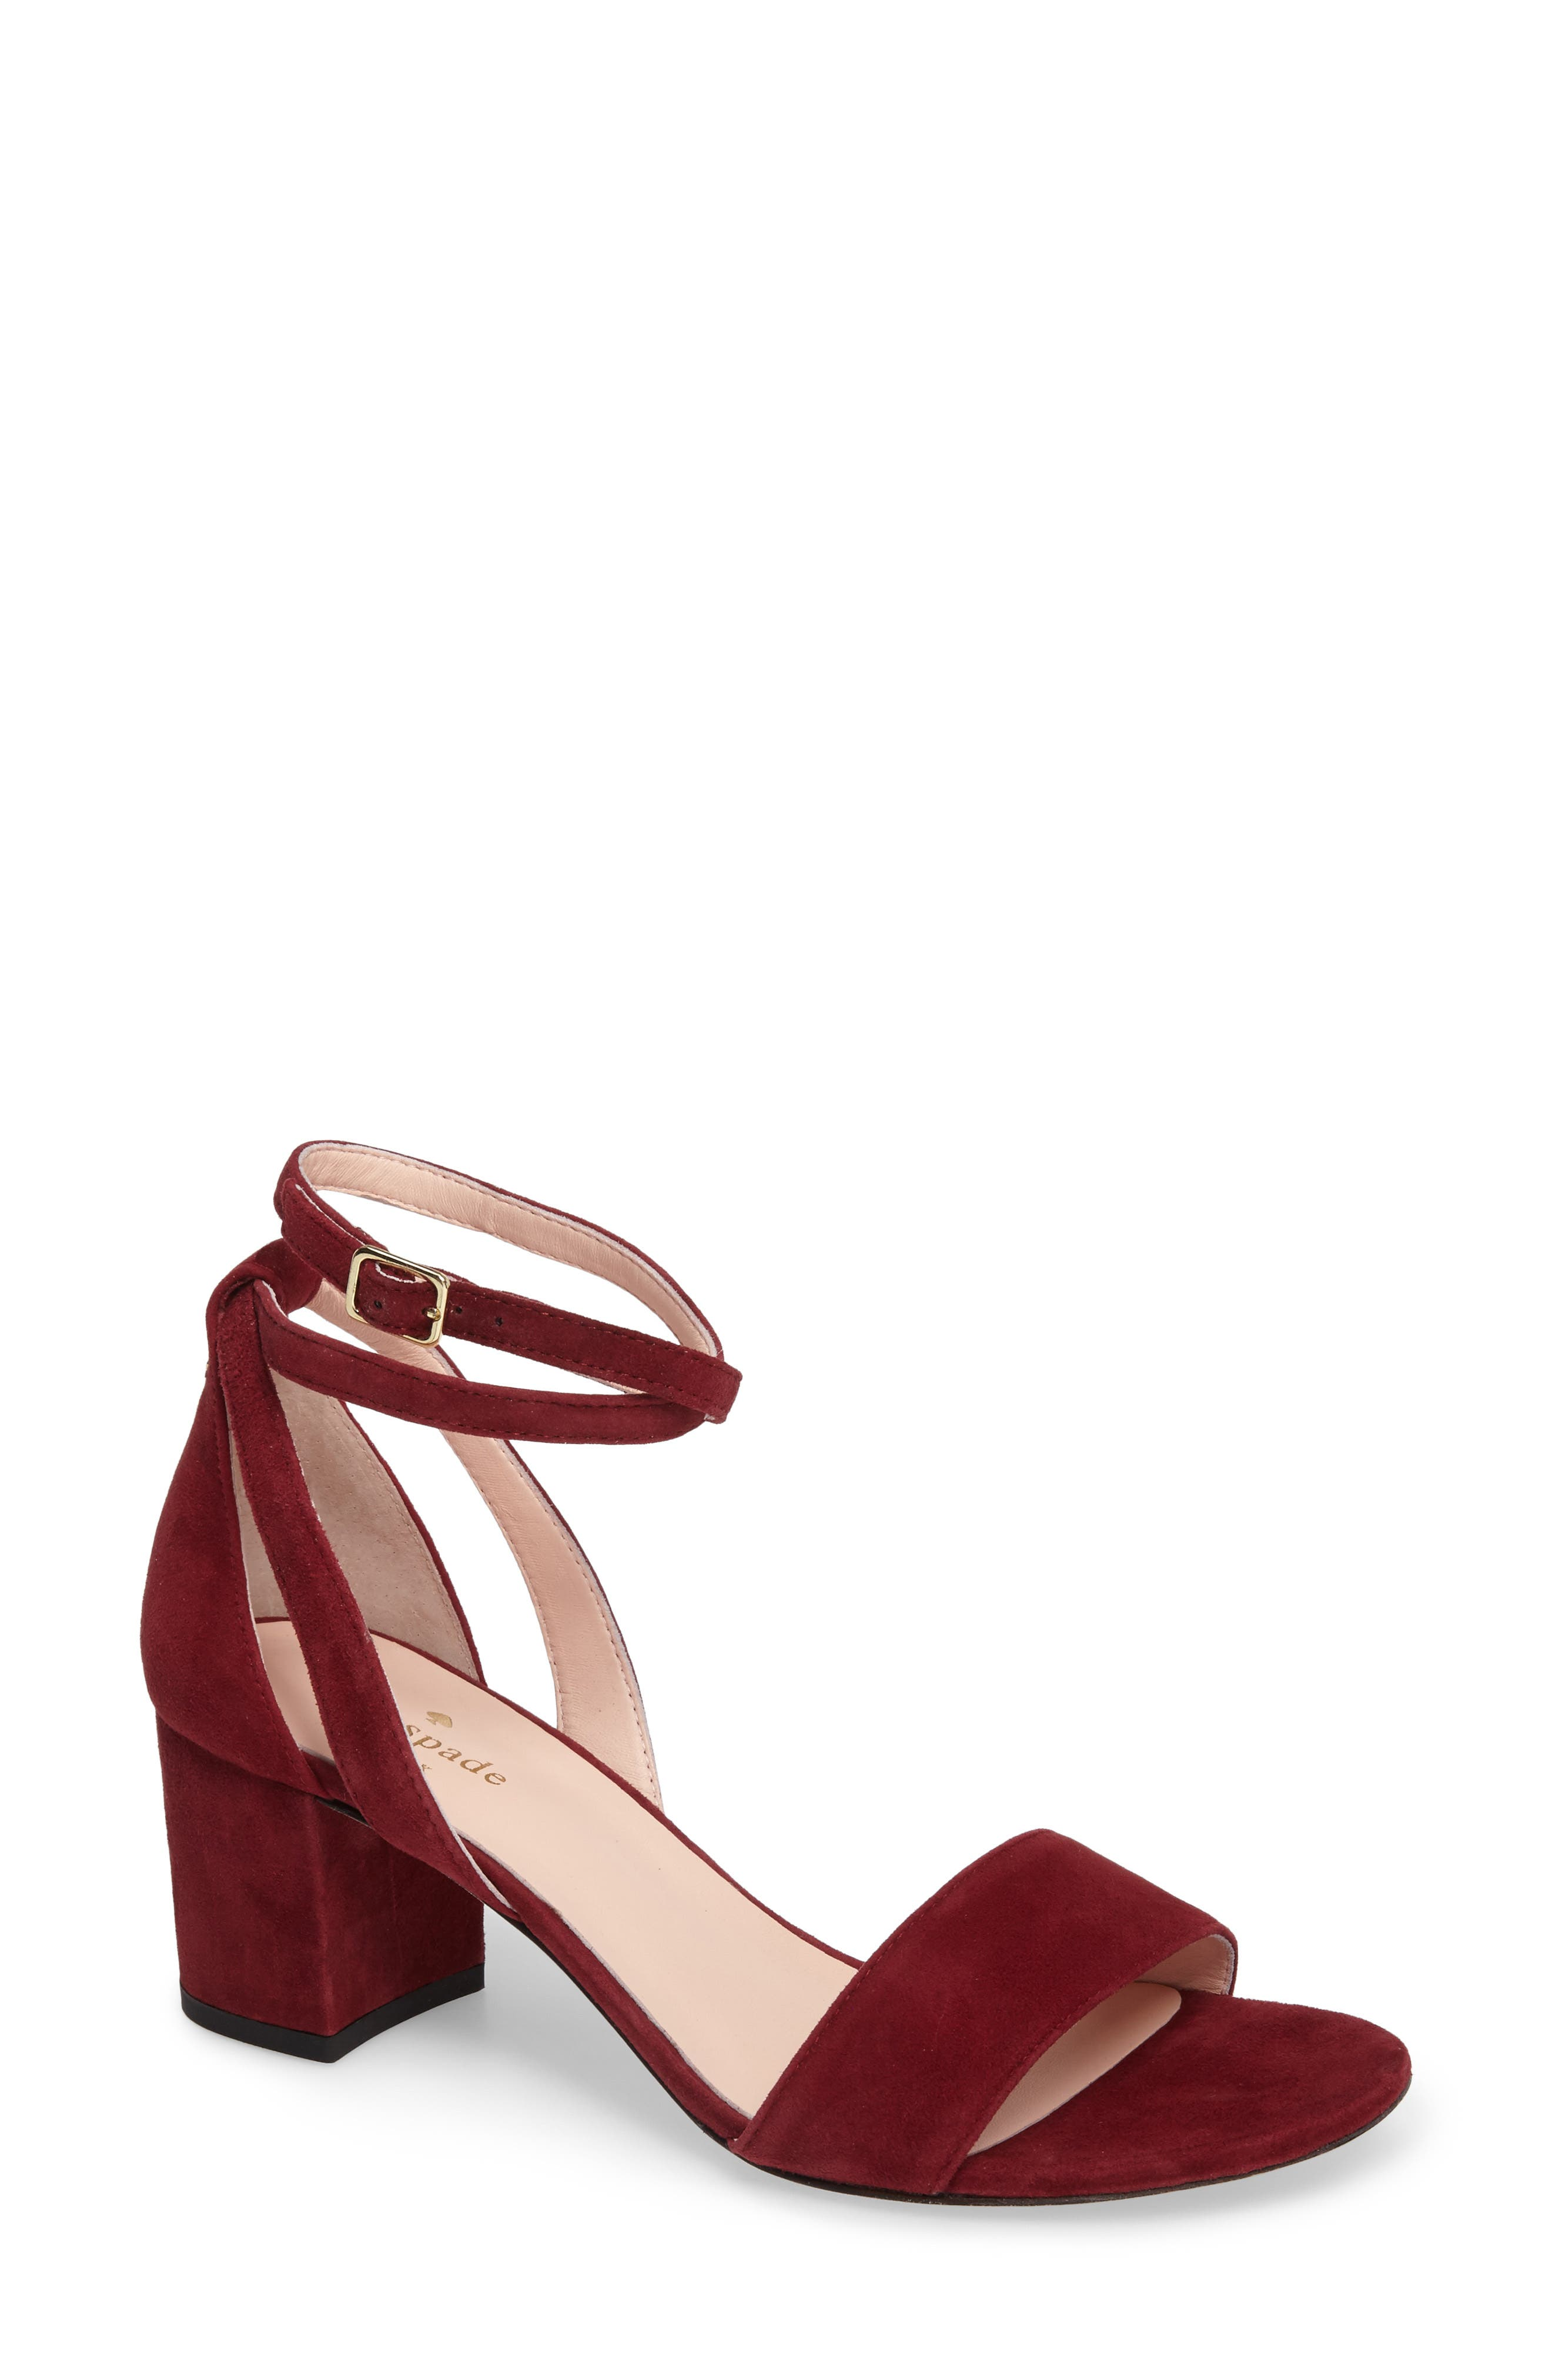 Main Image - kate spade new york watson block heel sandal (Women)